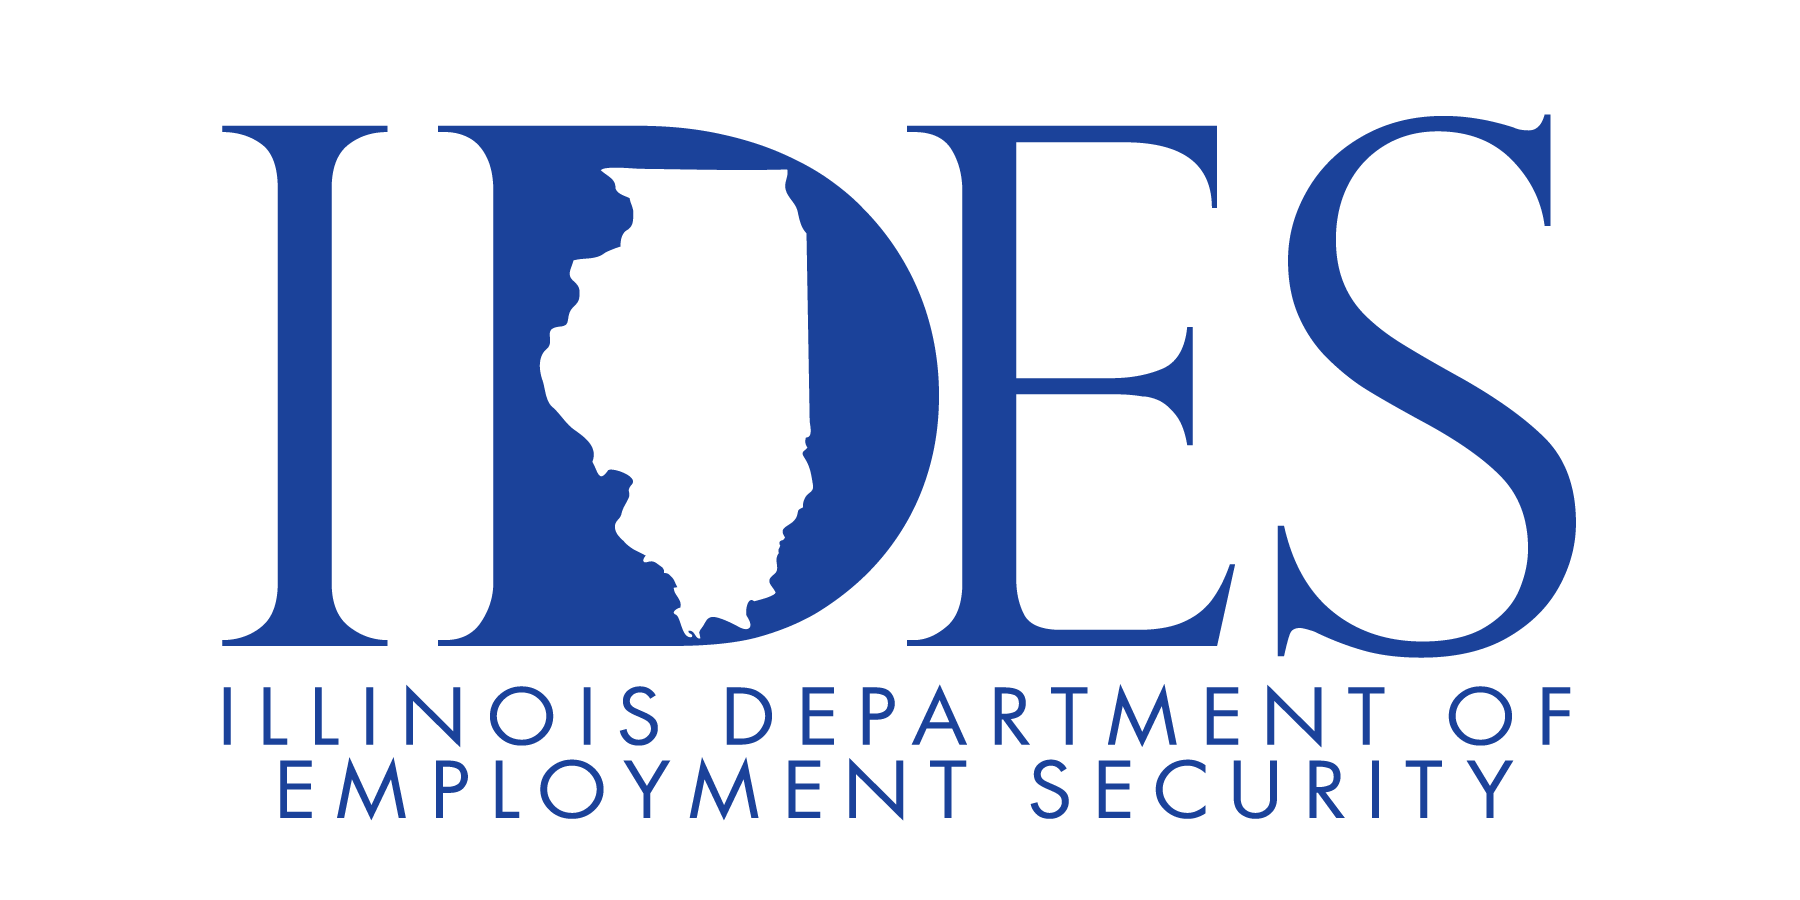 Ides illinois file my certification - Ides Logo